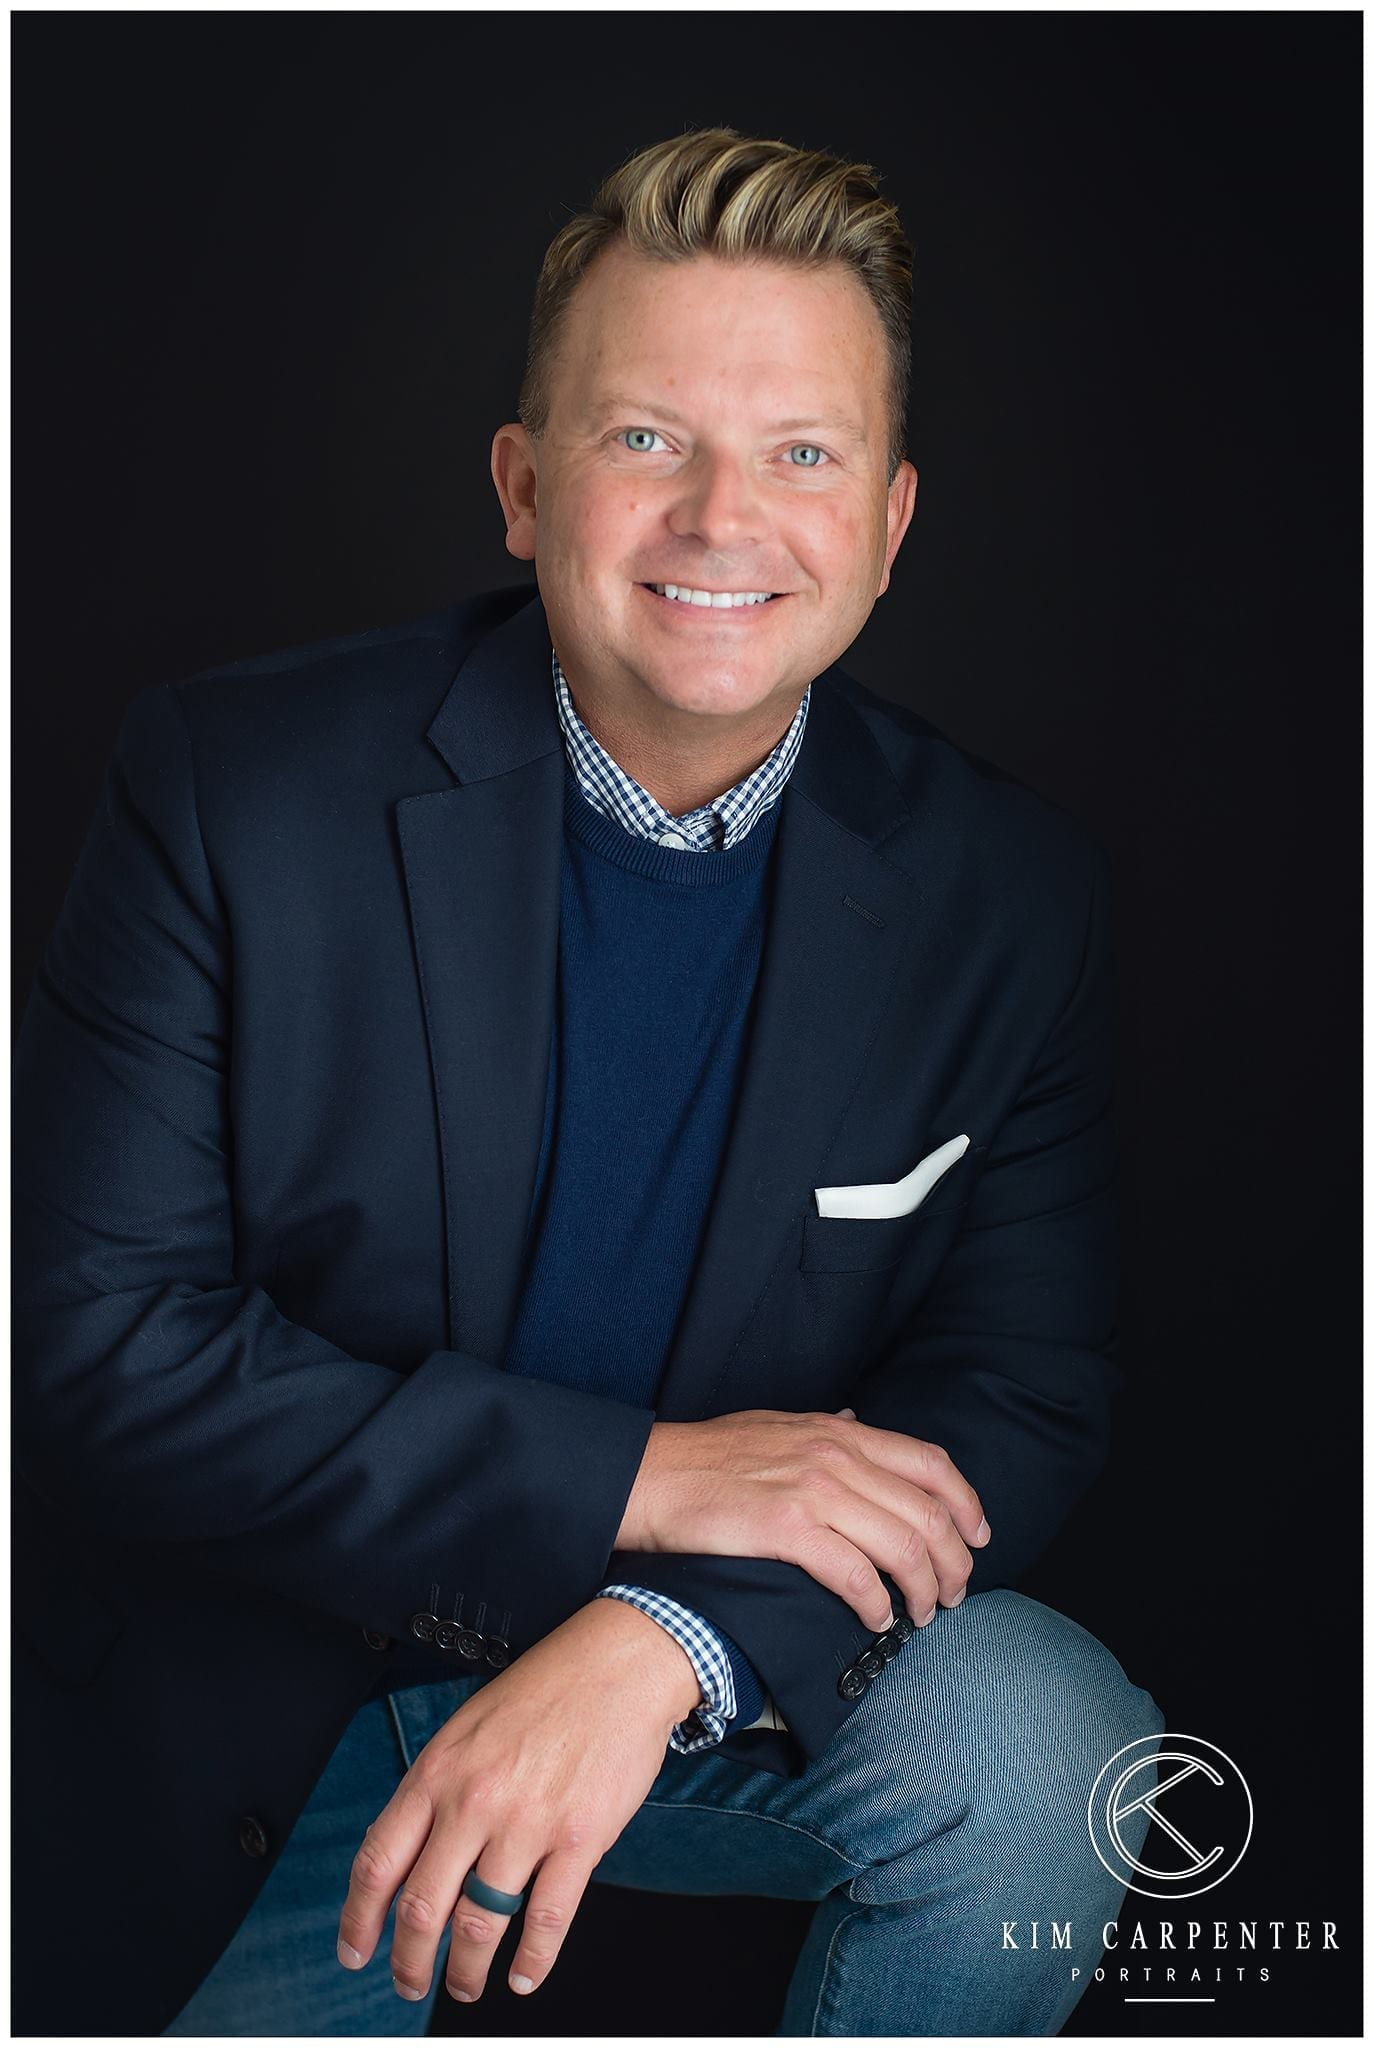 A smiling man who is posing for a professional portrait for personal branding.